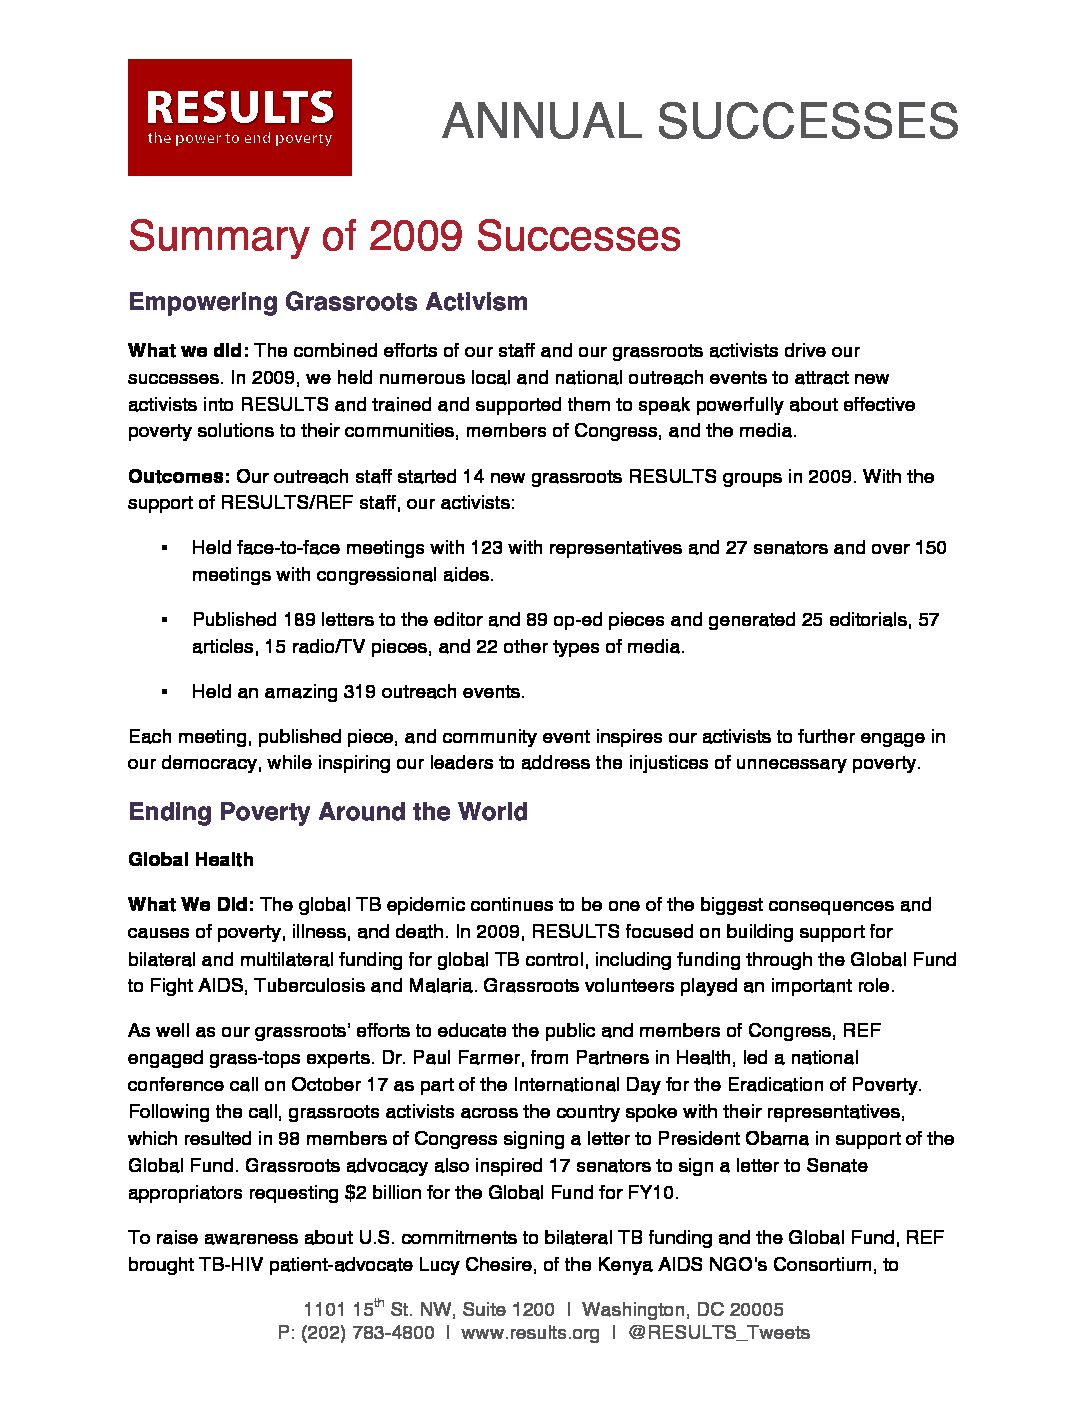 Annual Successes 2009